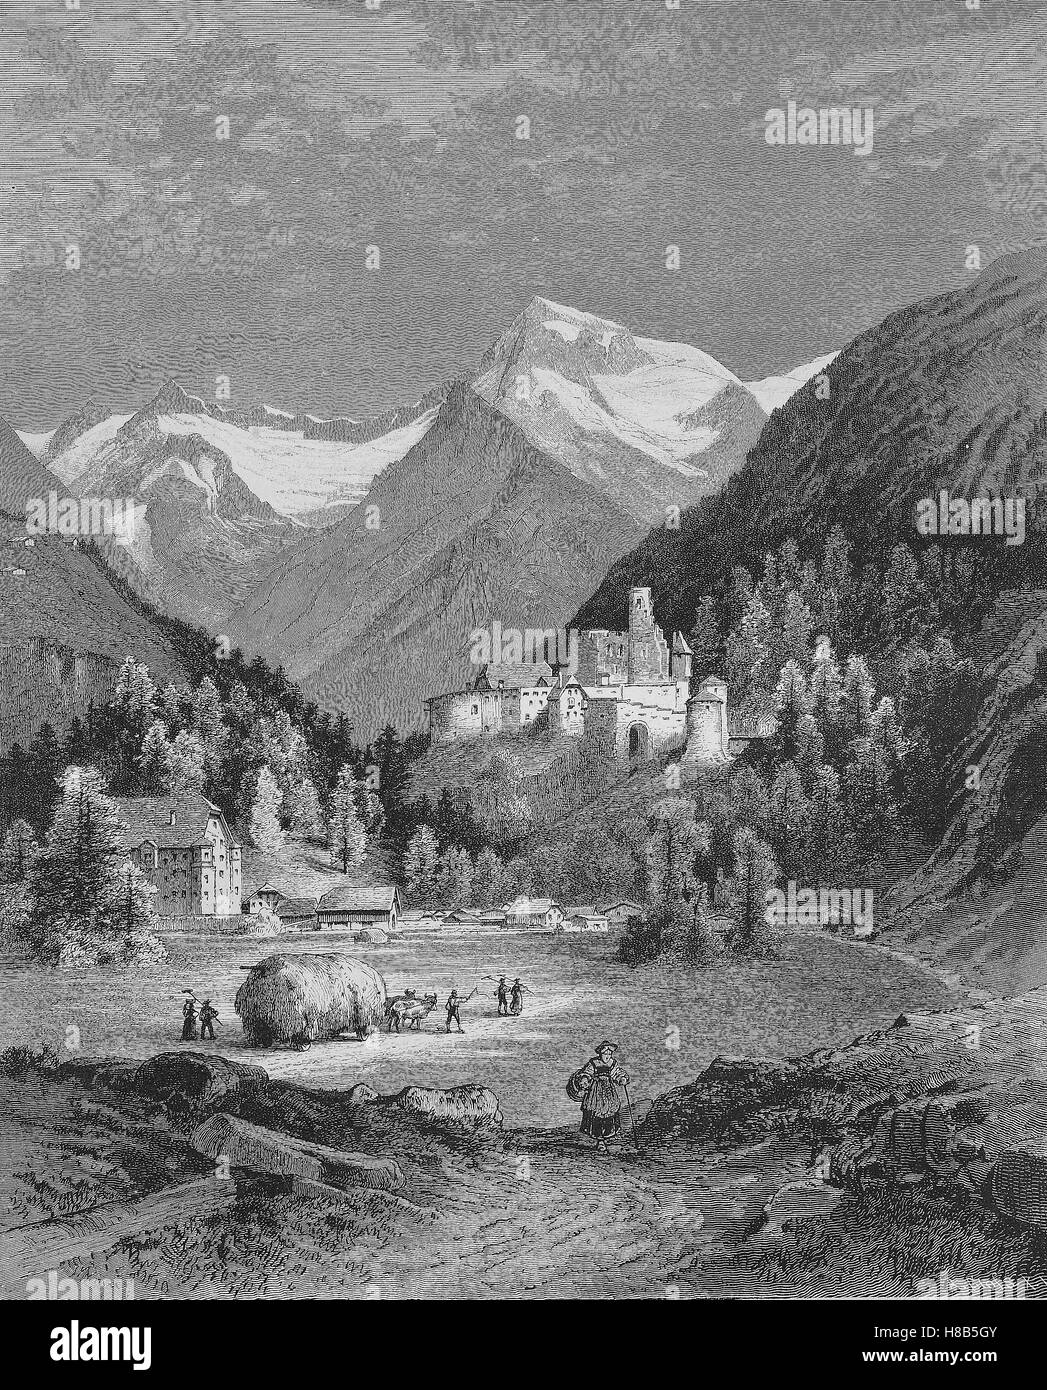 Reichenberg Castle, Taufers im Muenstertal in South Tyrol in northern Italy, Woodcut from 1892 - Stock Image